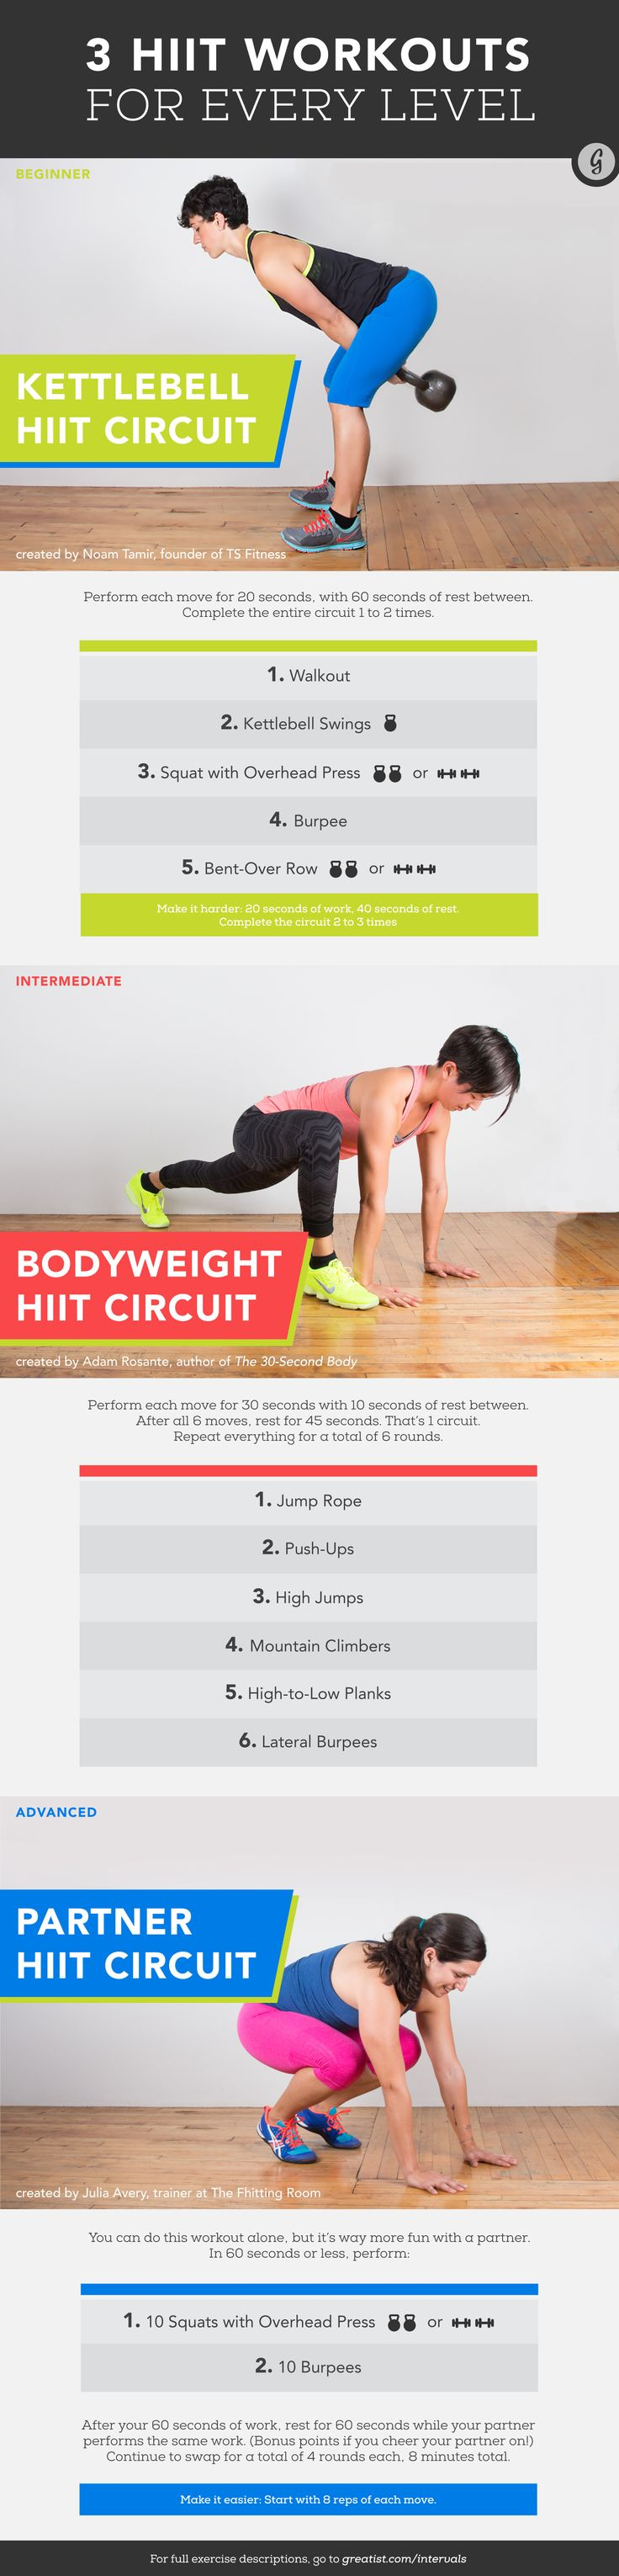 Interval Training Workouts for Every Level #interval #training #HIIT #workouts